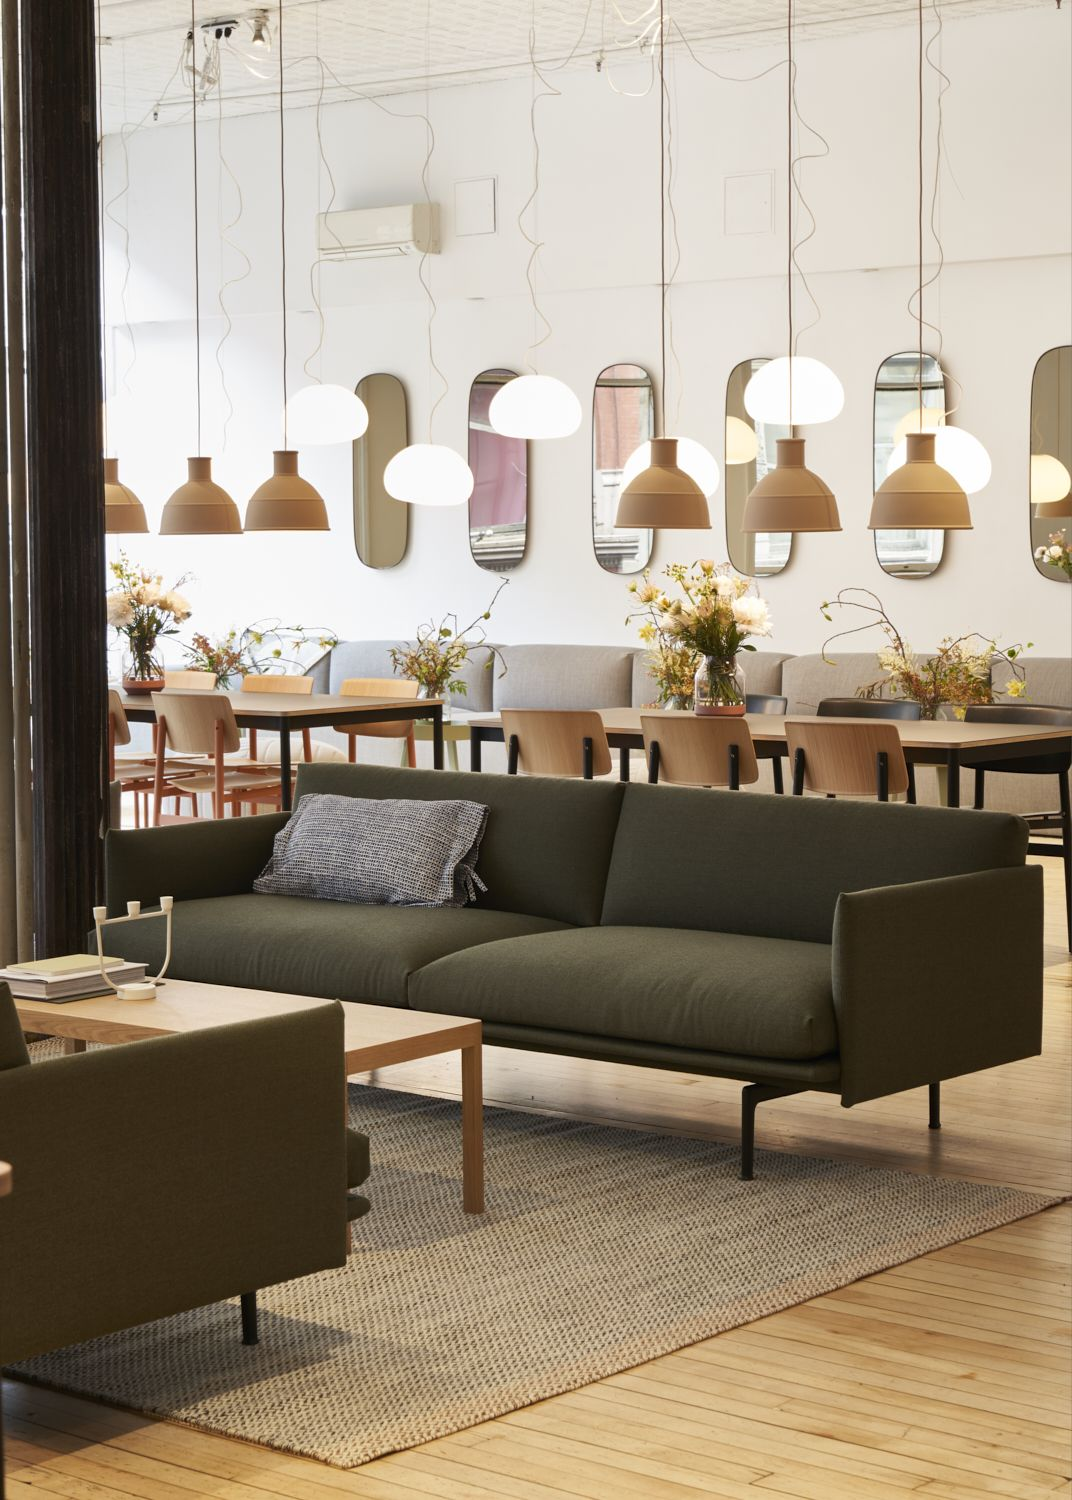 Muuto Sofa Outline Sofa Designed By Anderssen Voll For Muuto In A